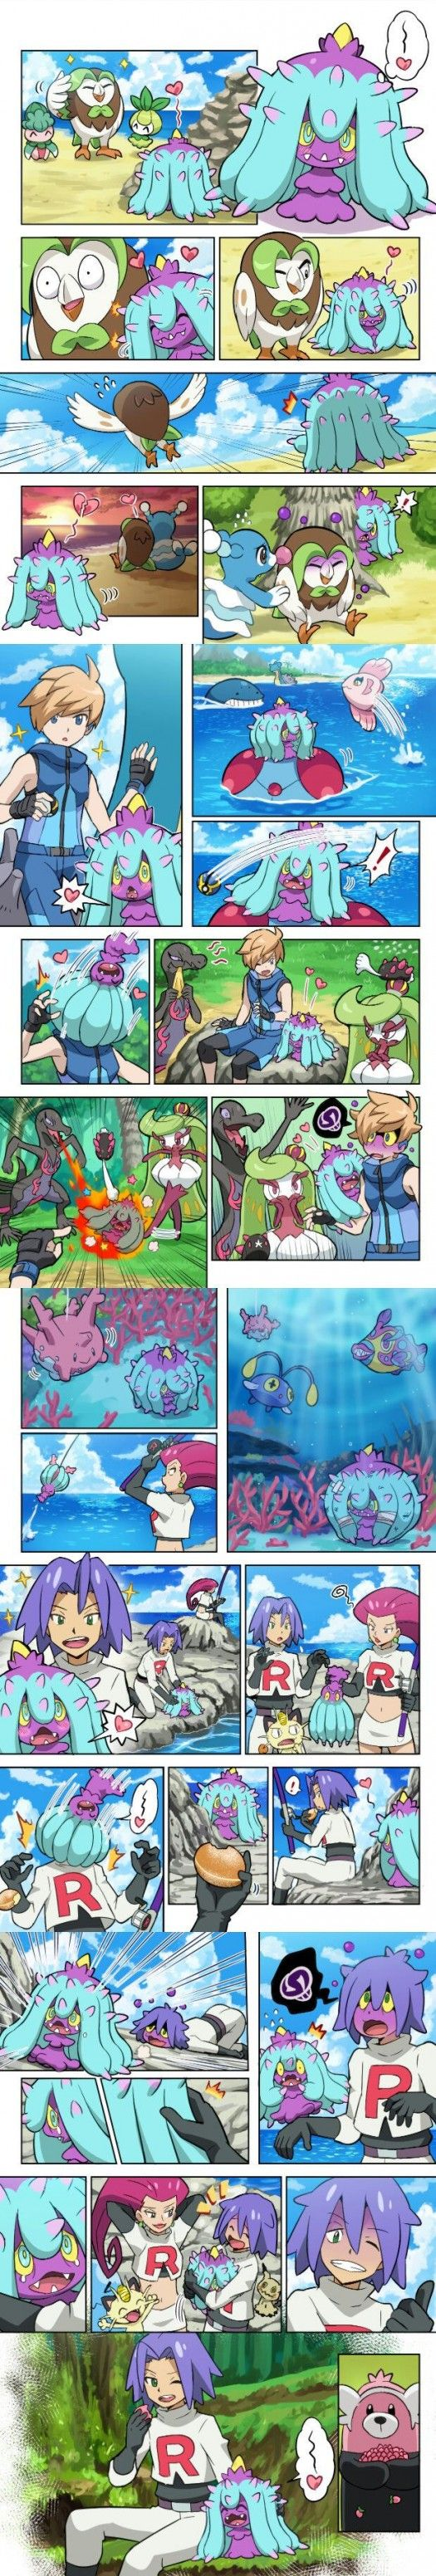 Why Jessie and James are the greatest Pokemon characters ever